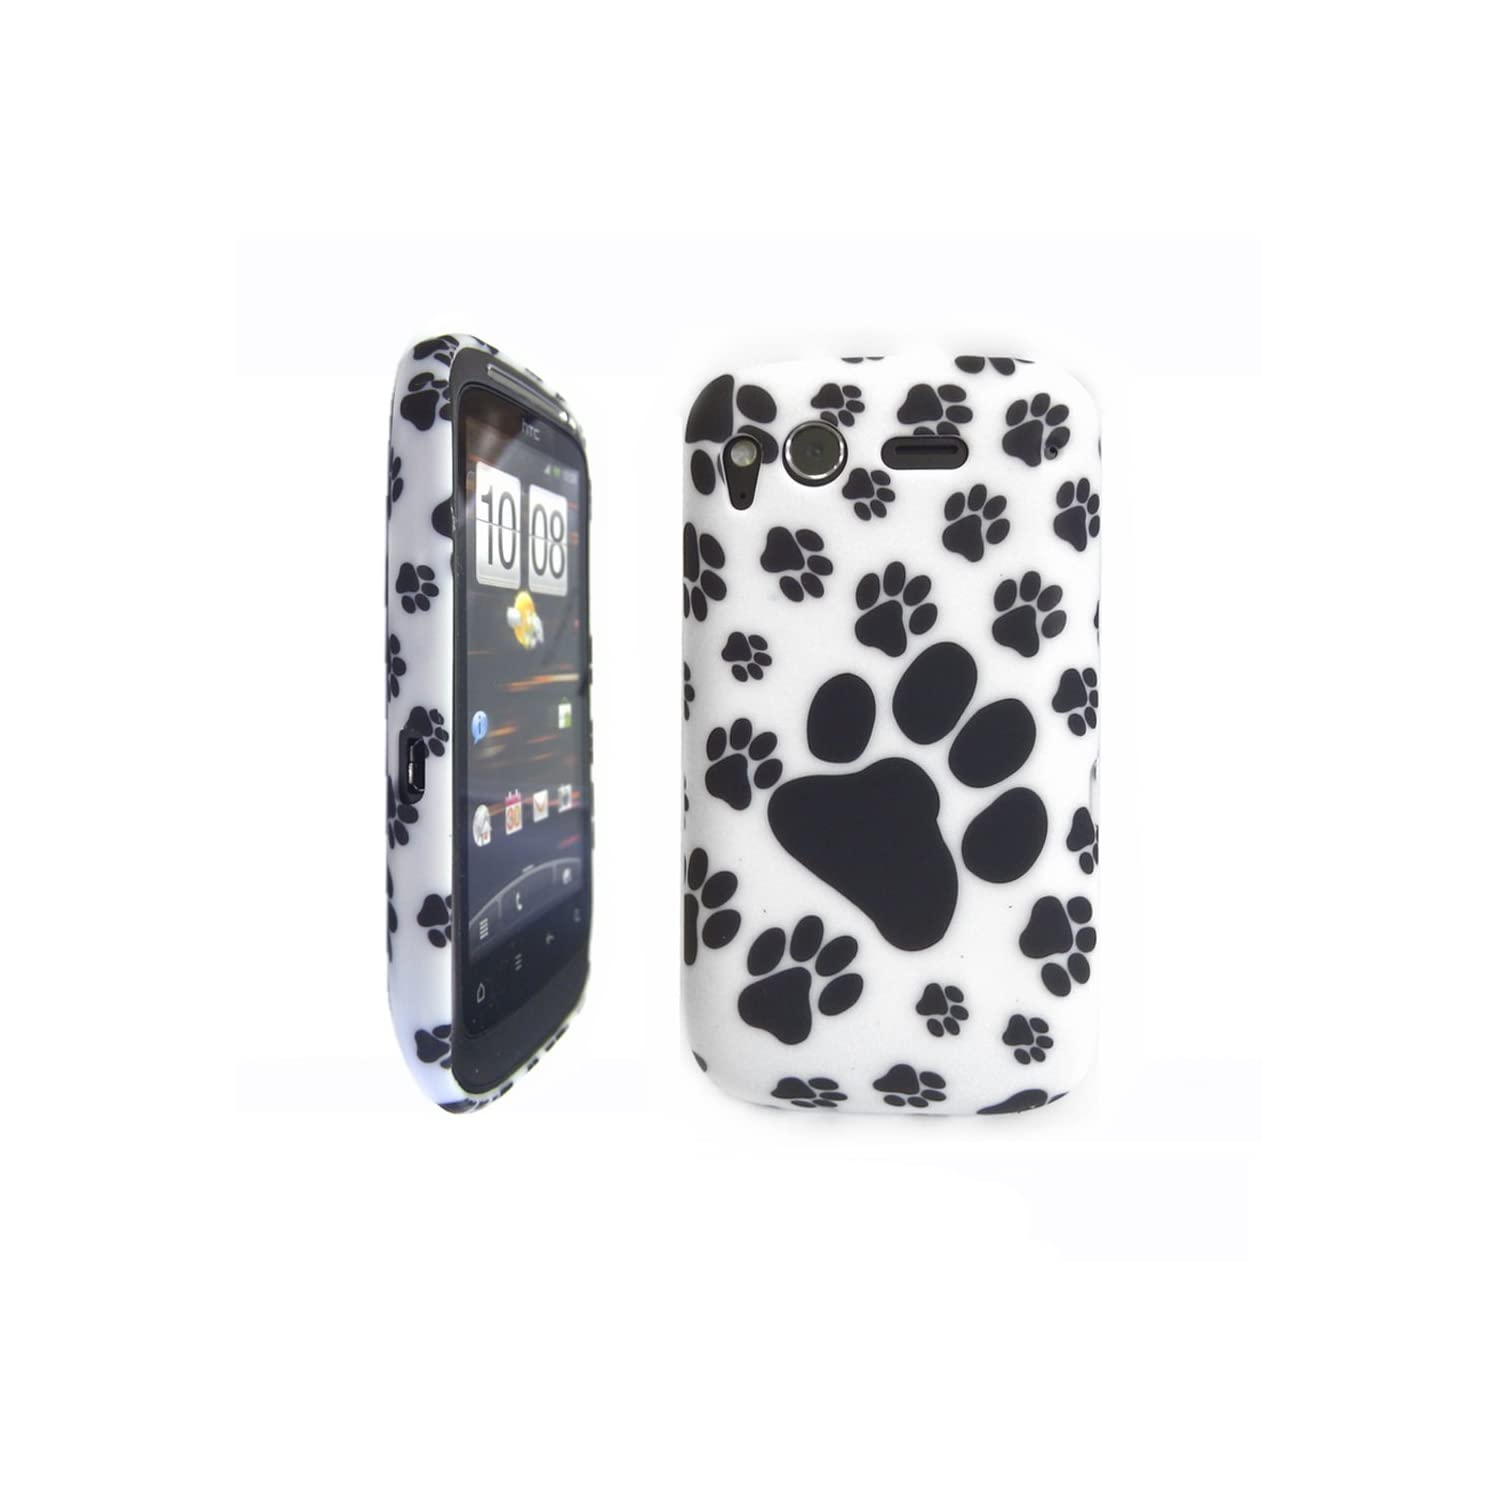 HTC Desire S / G12 / Black & White Paw Print gel case + SCREEN PROTECTOR